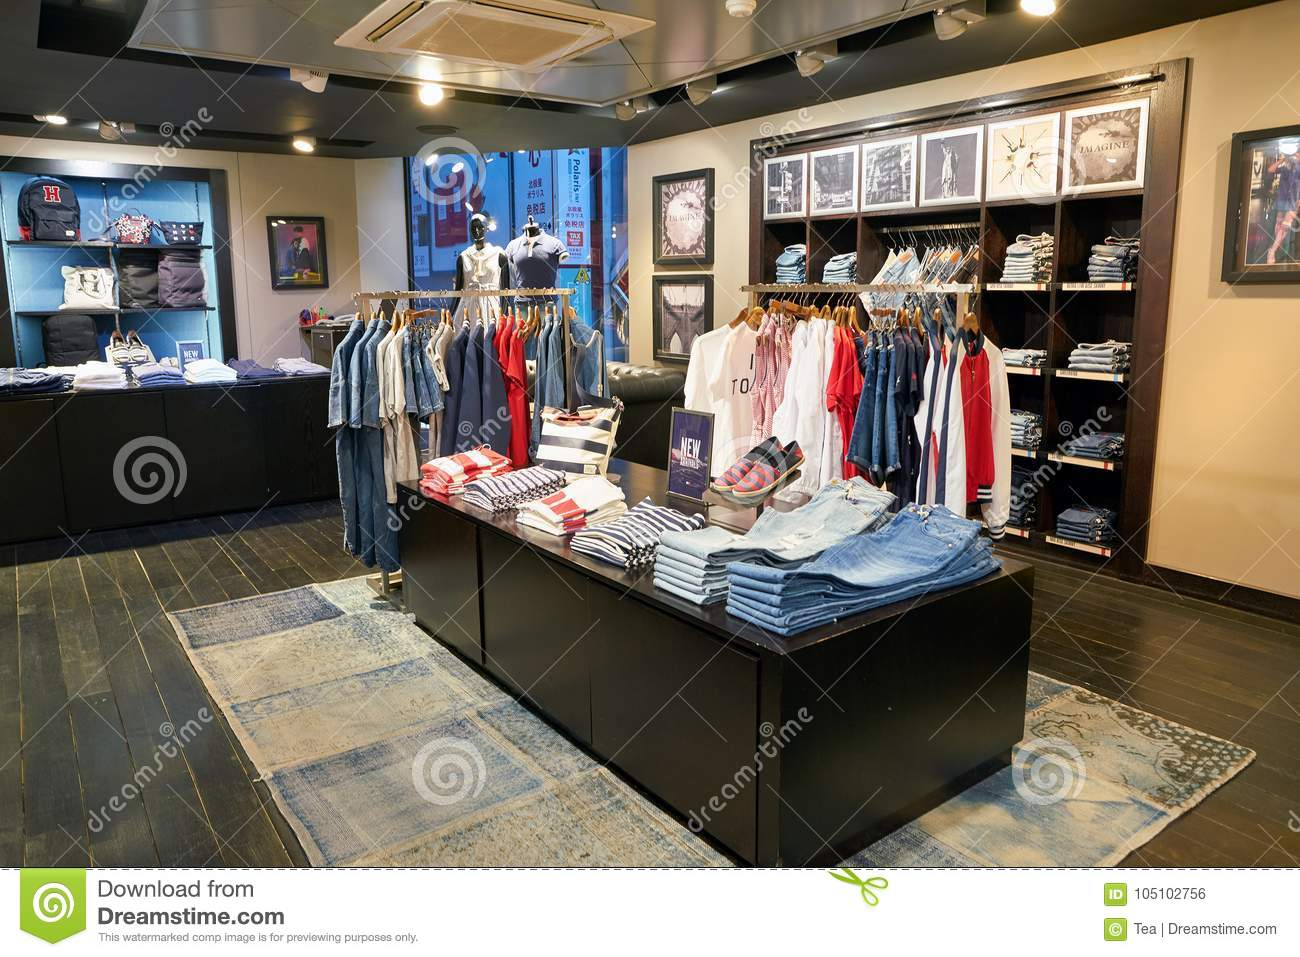 e6f561c0 SEOUL, SOUTH KOREA - CIRCA MAY, 2017: clothing on display at a Tommy  Hilfiger store in Seoul.